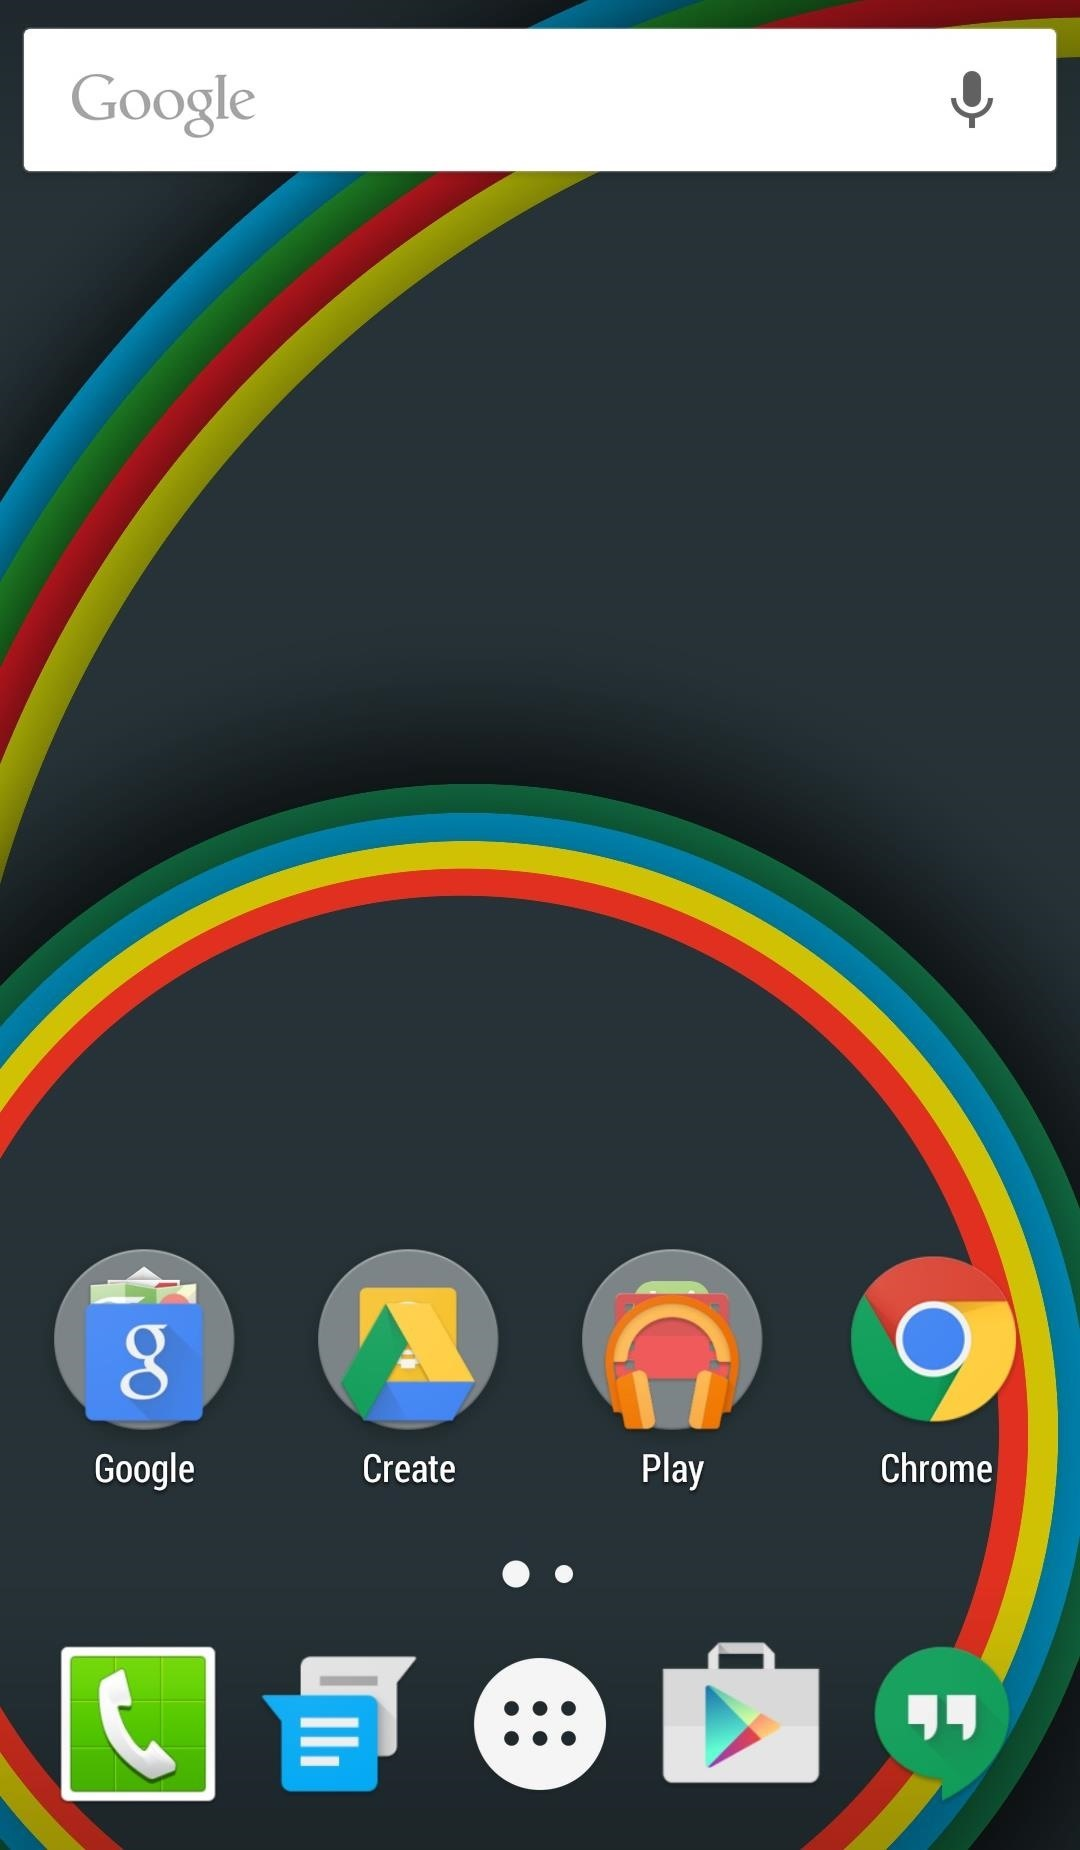 New Google Now Launcher Makes Your Old Android Feel Like It's Running Lollipop